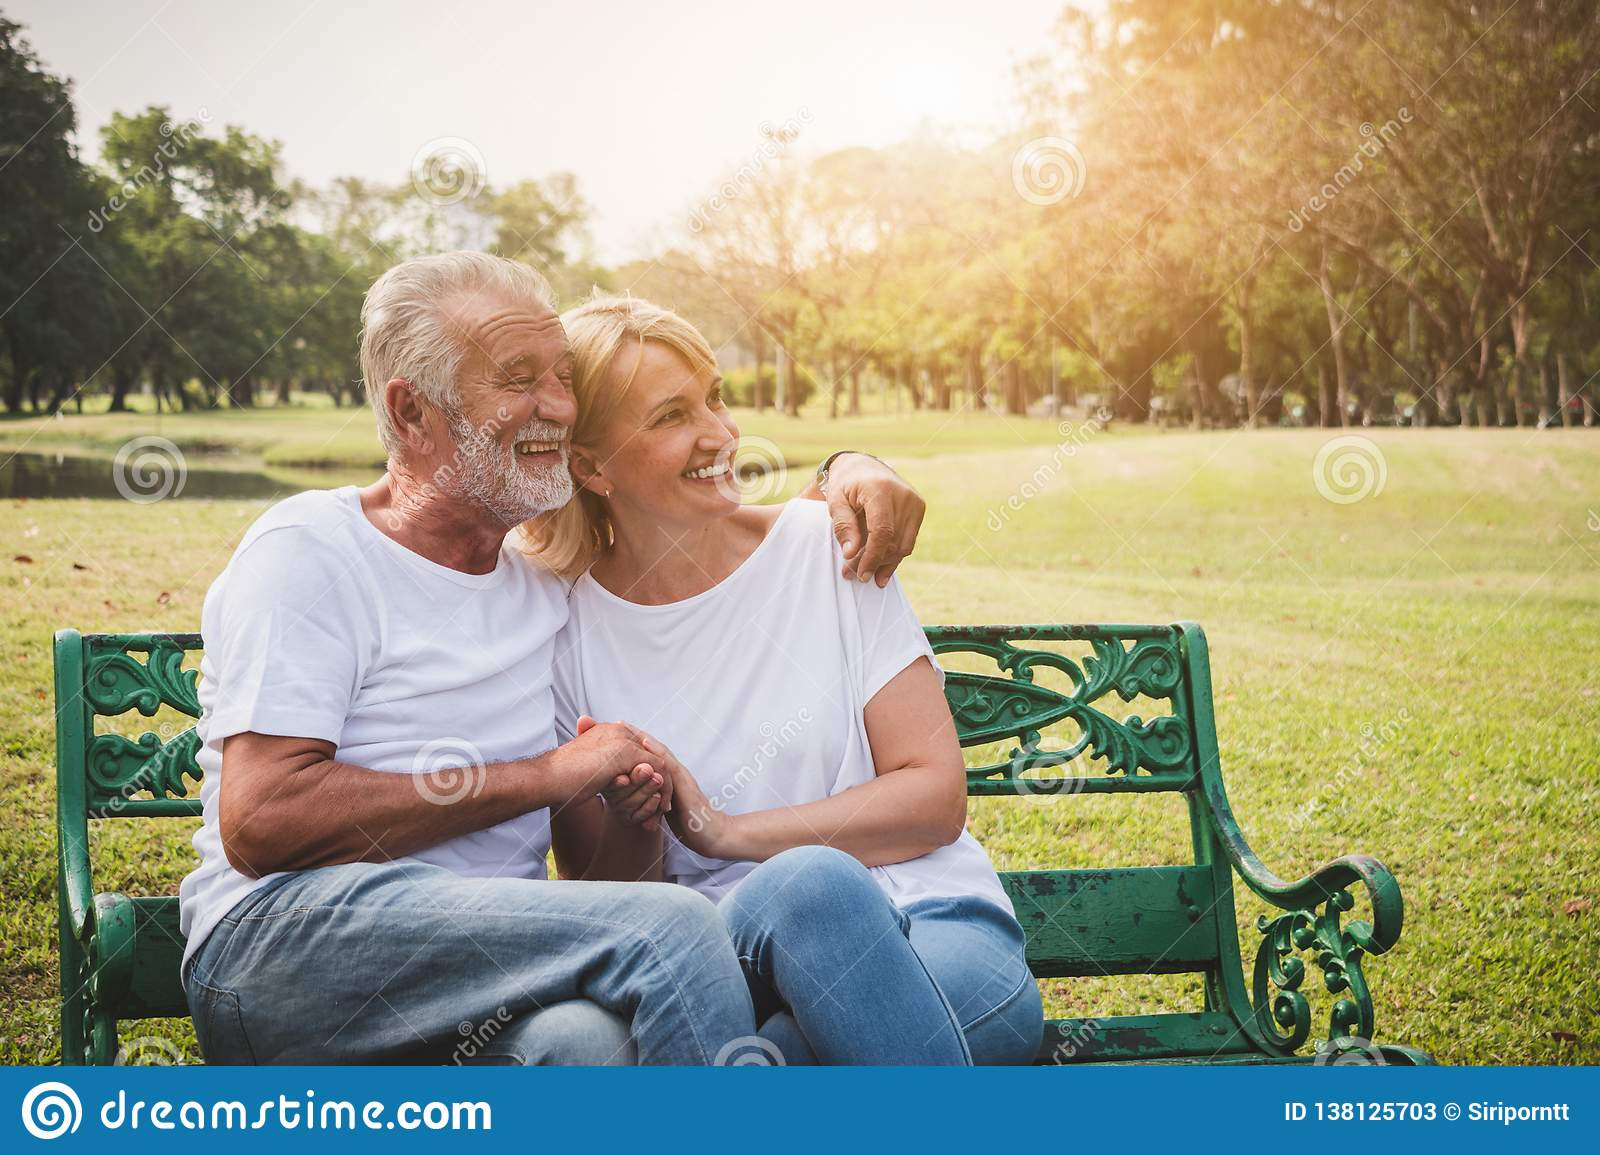 Senior couple having romantic and relax time in a park